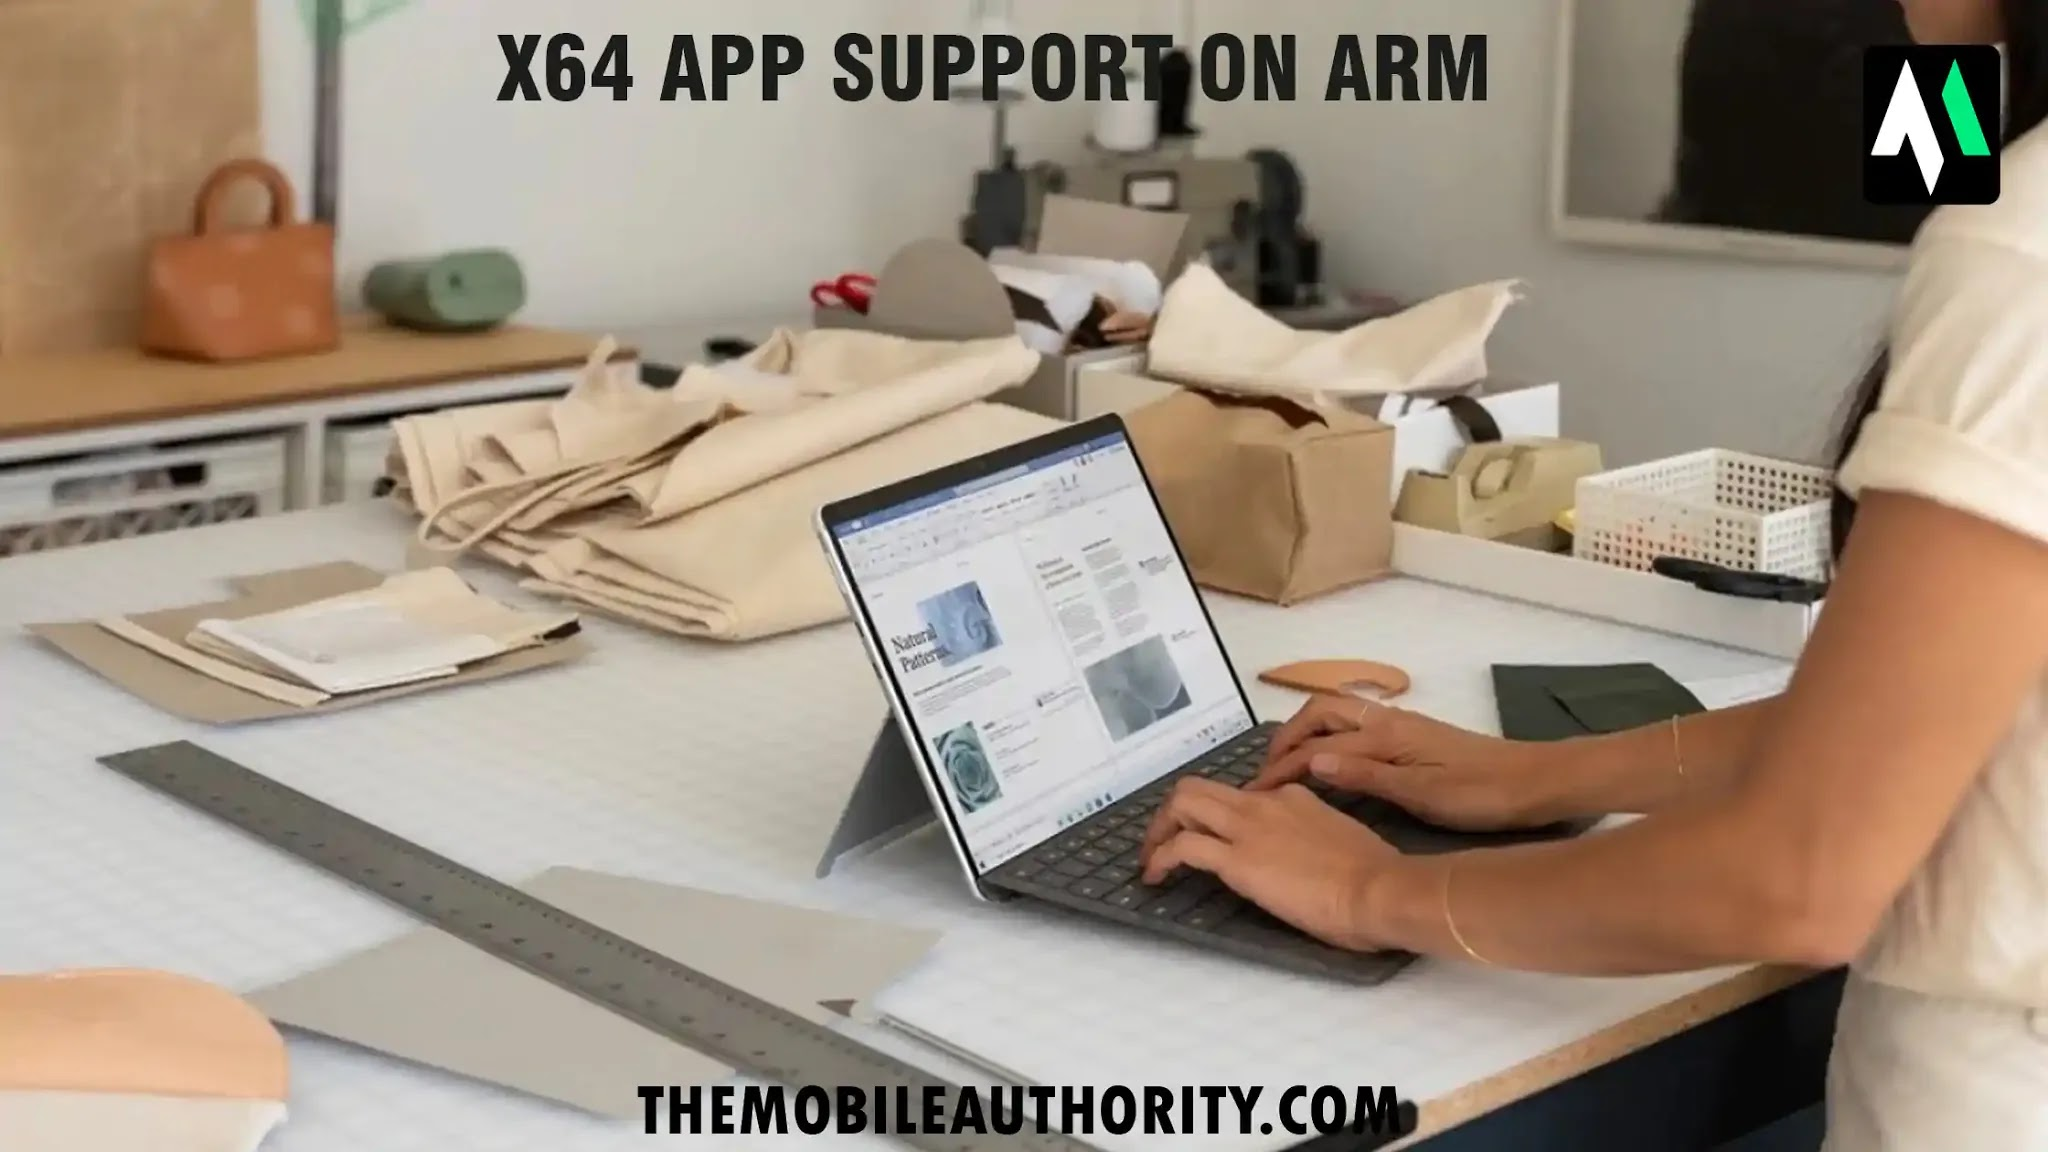 MICROSOFT BRINGS X64 APP SUPPORT TO WINDOWS ON ARM